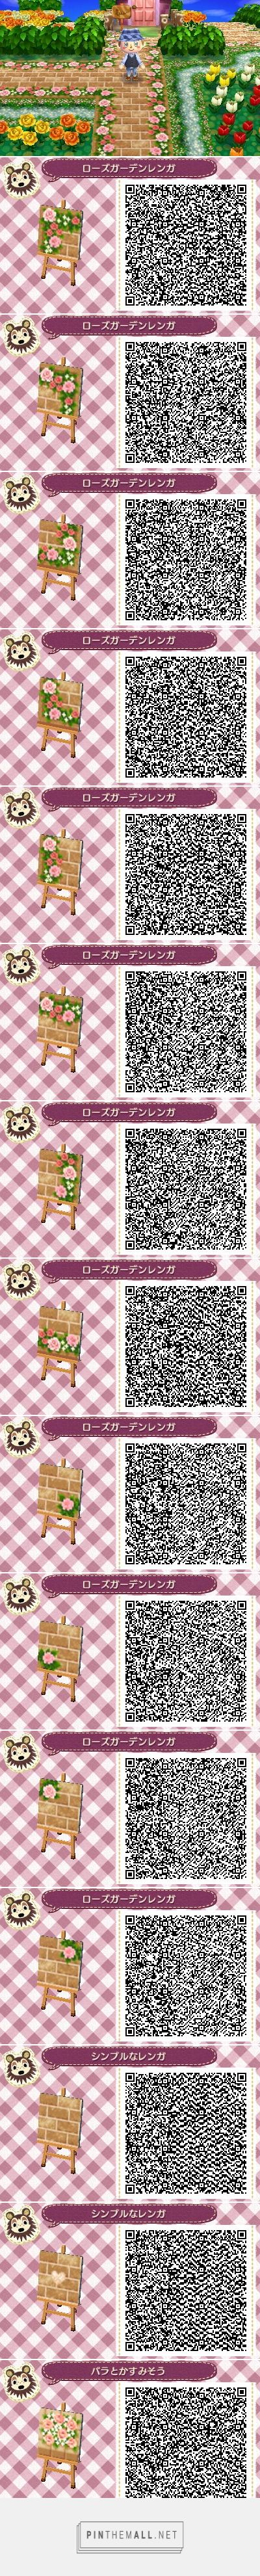 Brick path with pink roses border and accents